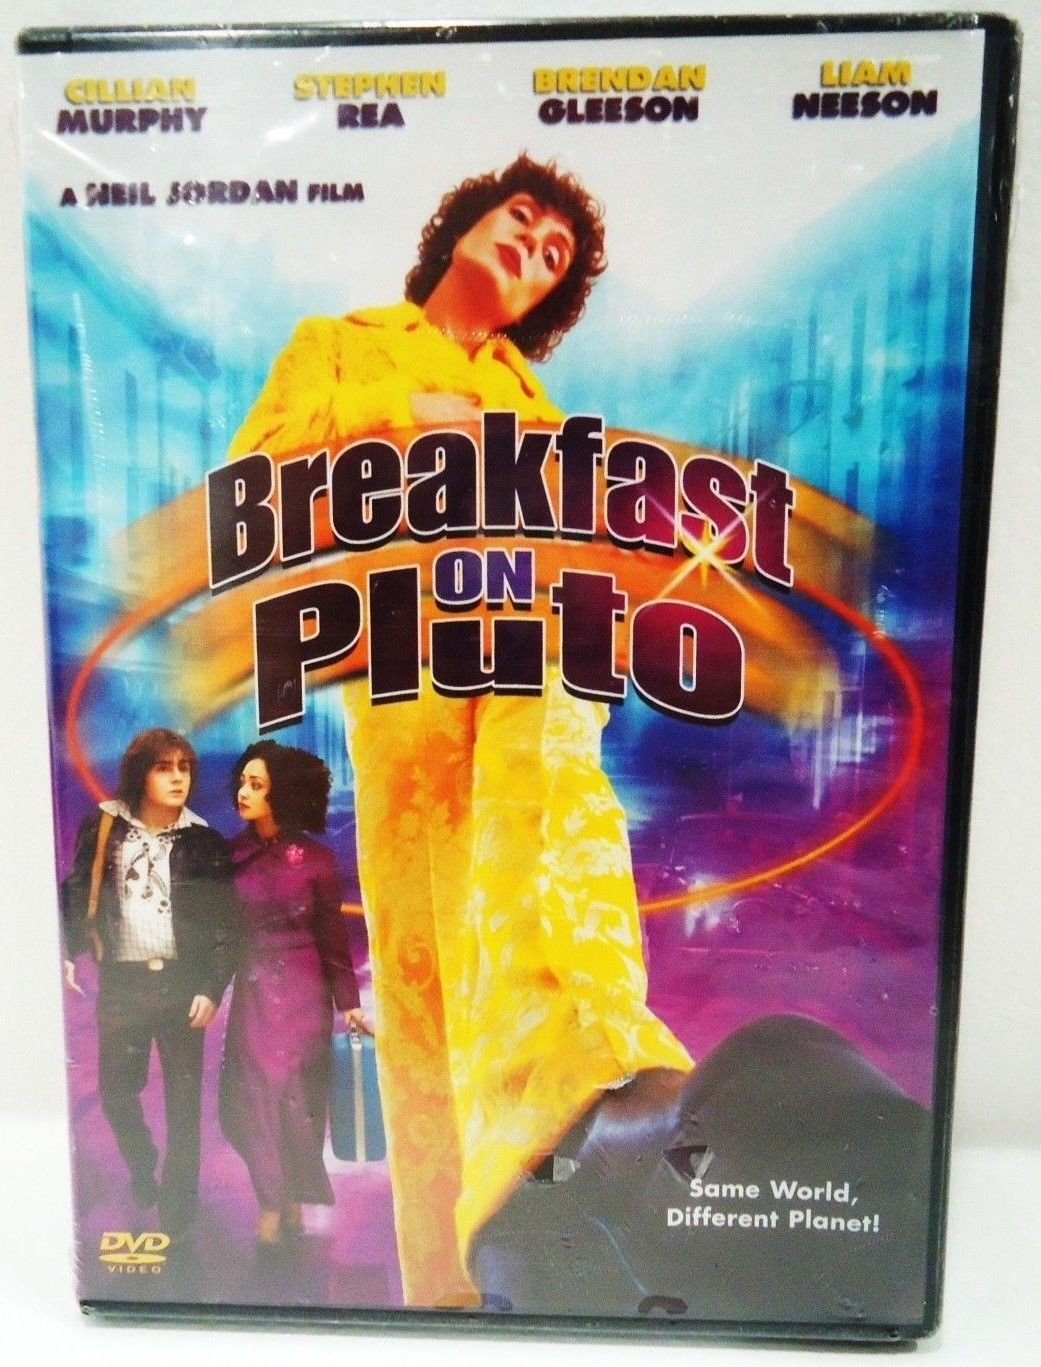 BREAKFAST ON PLUTO - DVD - LIAM NEESON - CILLIAN MURPHY - NEW - DRAMA - MOVIE